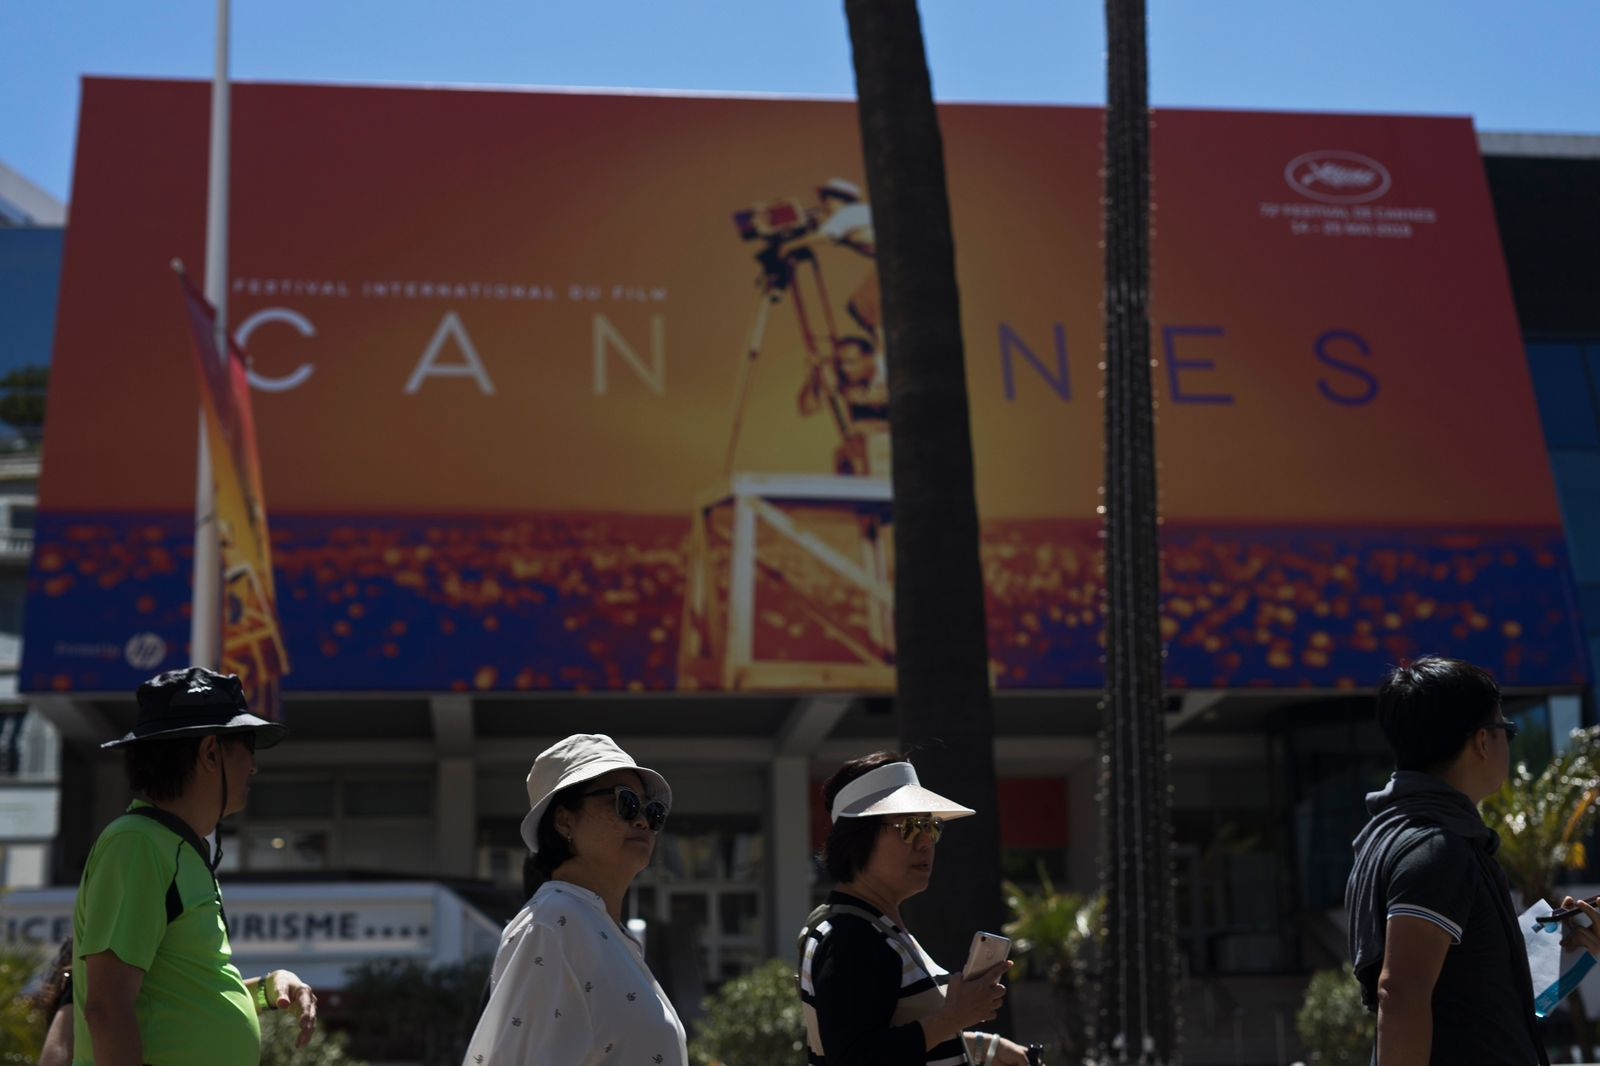 Festival goers walk by the Palais des festivals during the 72nd international film festival, Cannes, southern France, Monday, May 13, 2019. The Cannes film festival runs from May 14th until May 25th 2019. (AP Photo/Petros Giannakouris)